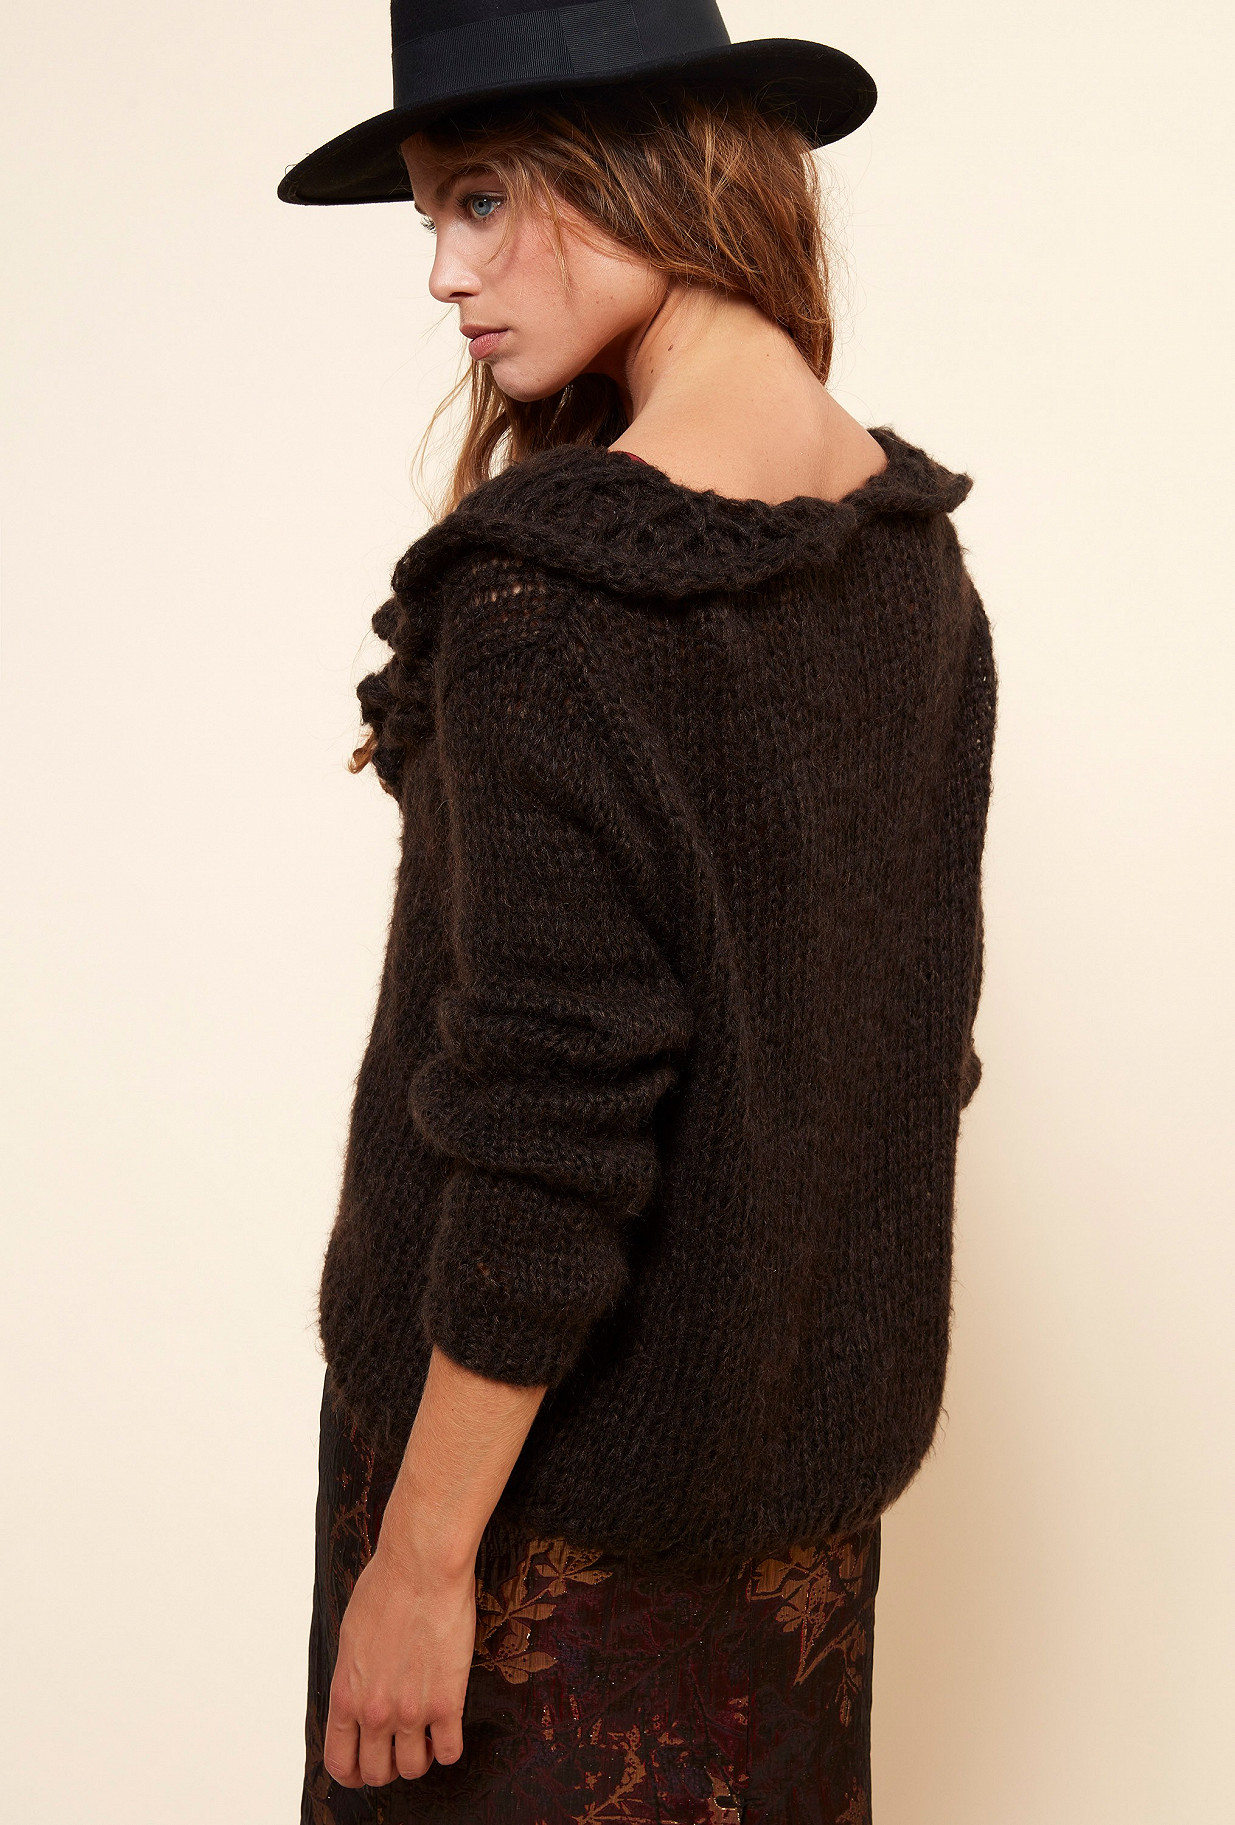 Charcoal Knit Frisco Mes Demoiselles Paris